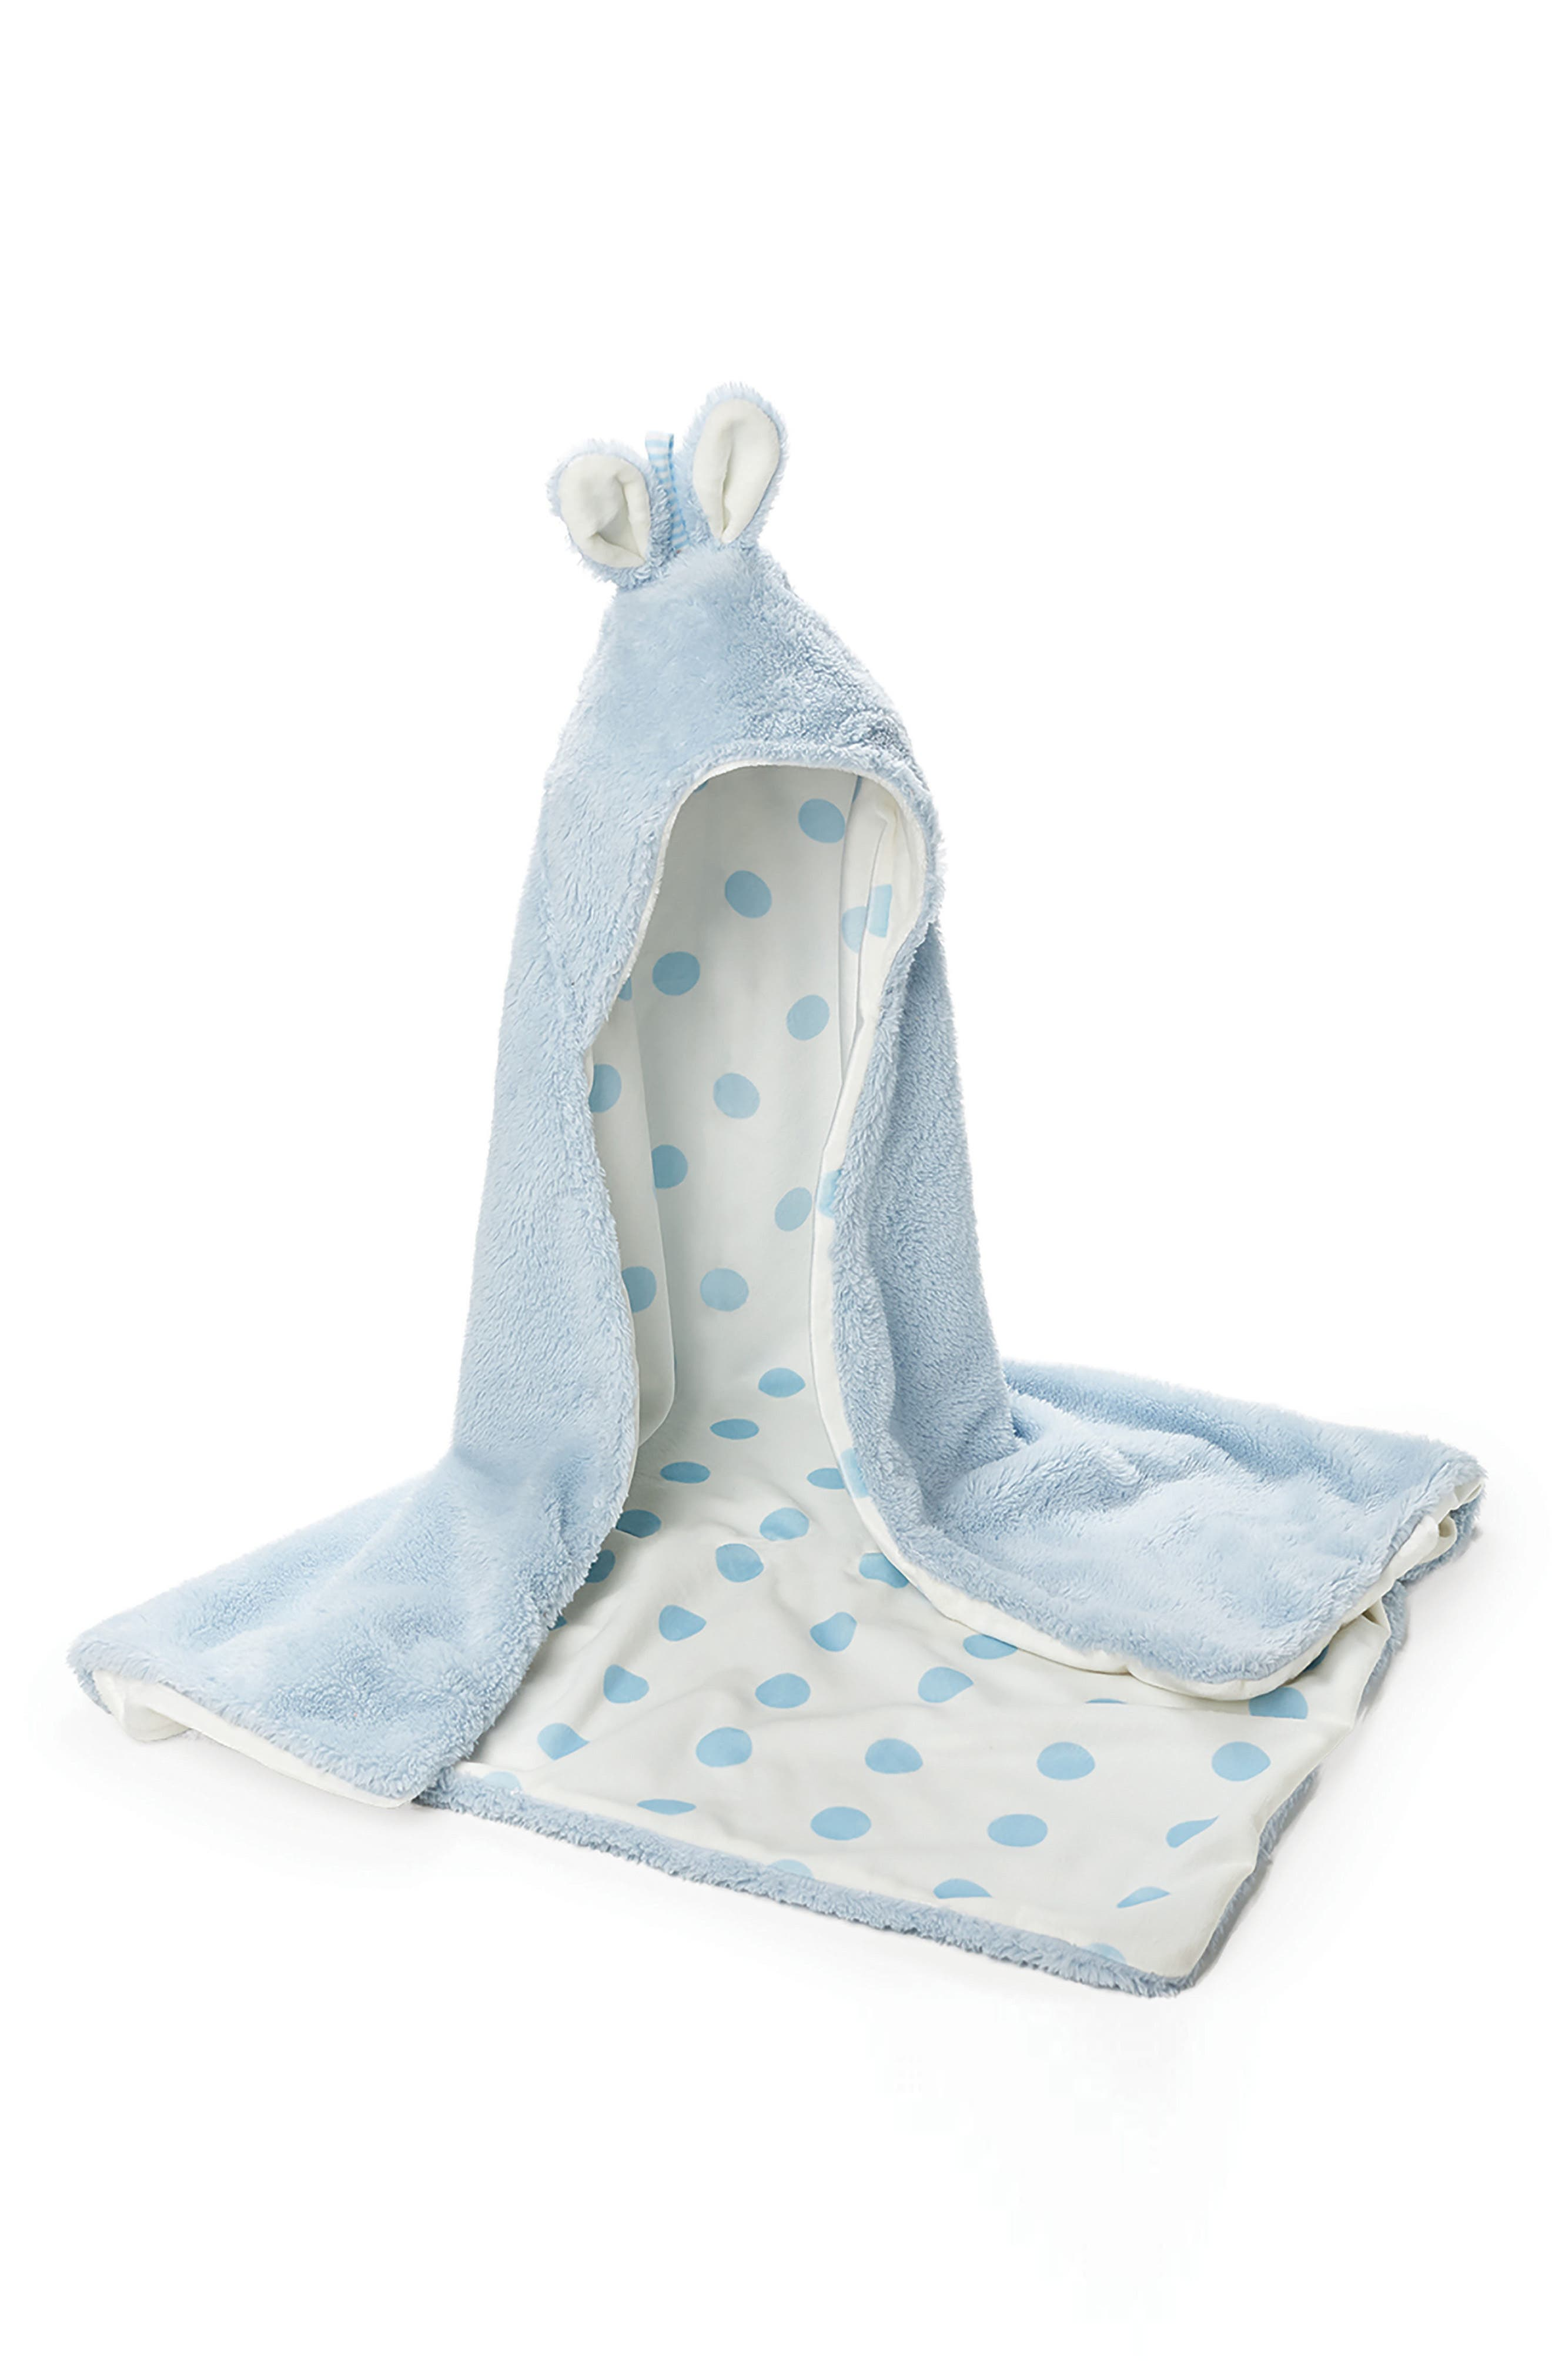 Main Image - Bunnies By The Bay Bunny Hooded Blanket